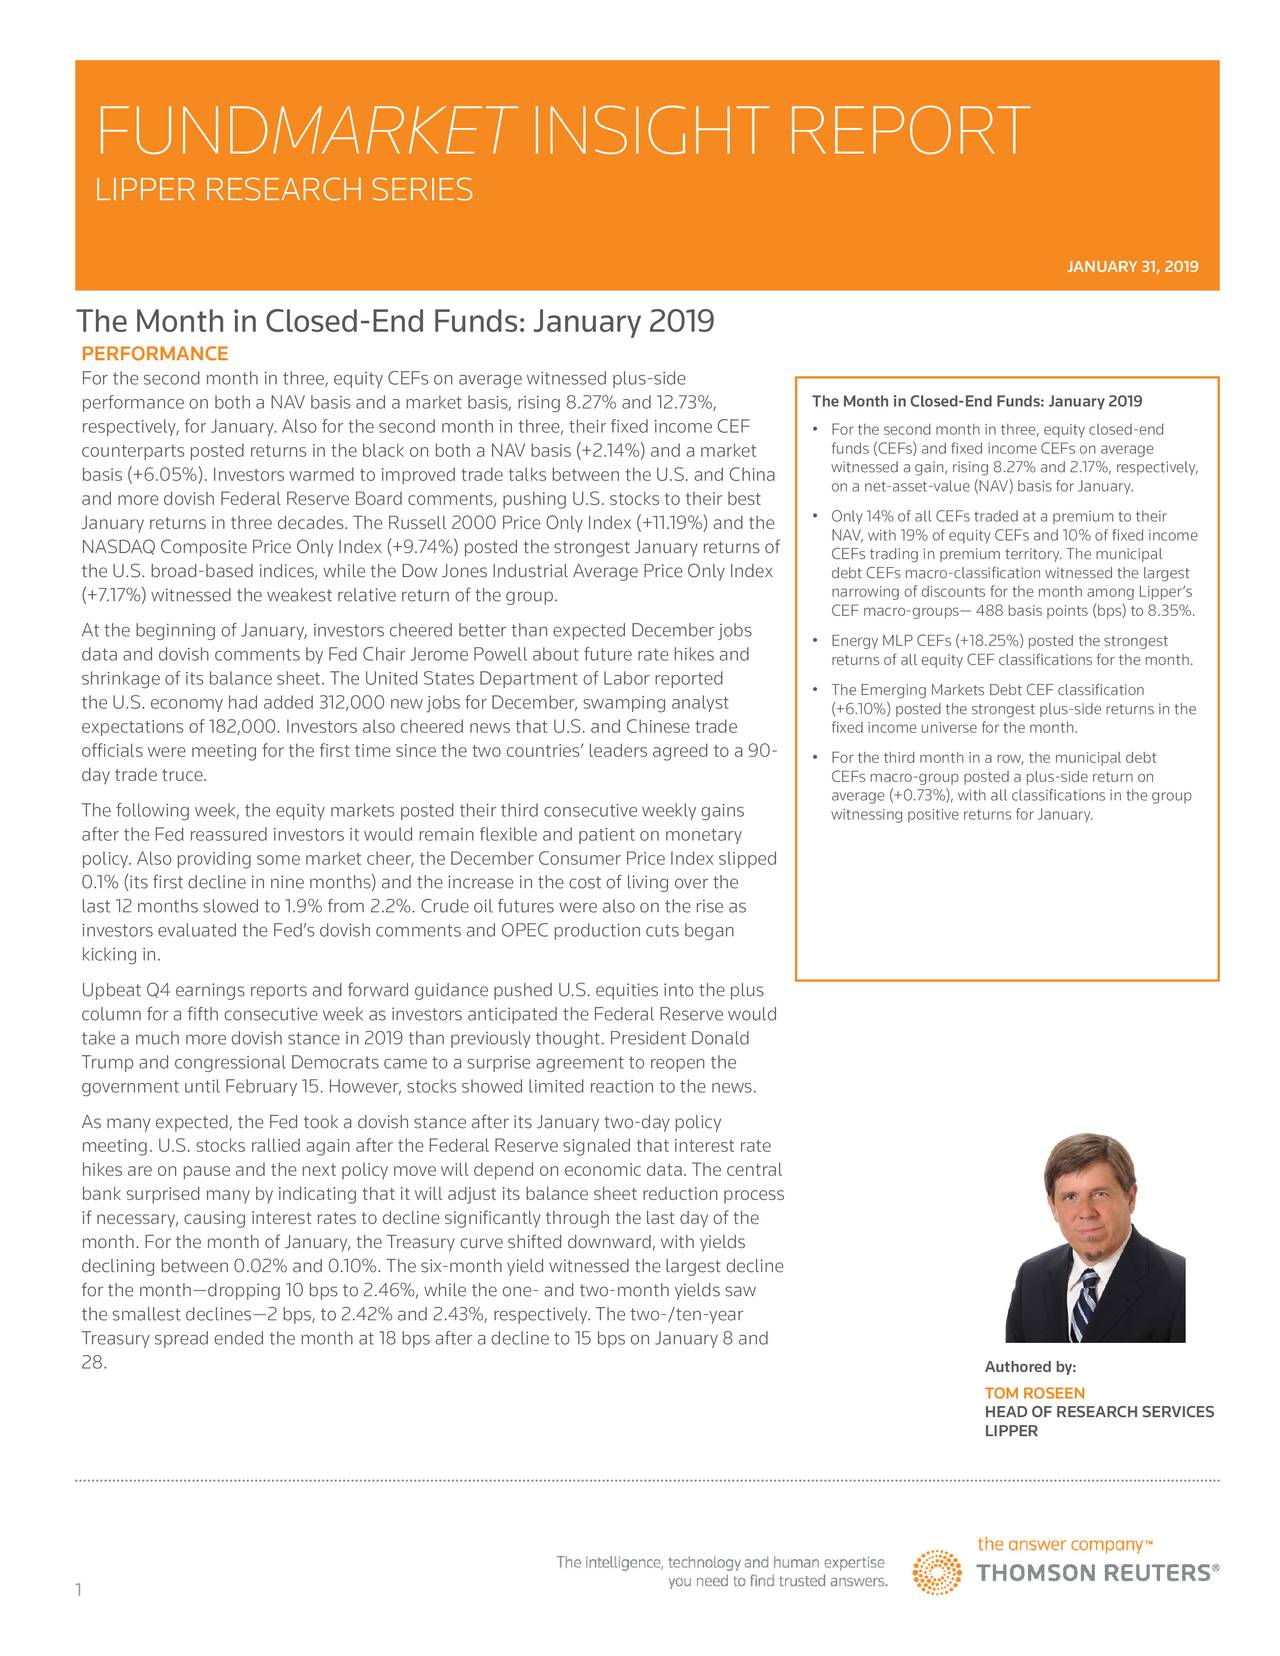 LIPPER RESEARCH SERIES JANUARY 31, 2019 The Month in Closed-End Funds: January 2019 PERFORMANCE For the second month in three, equity CEFs on average witnessed plus-side performance on both a NAV basis and a market basis, rising 8.27% and 12.73%, The Month in Closed-End Funds: January 2019 respectively, for January. Also for the second month in three, their fixed income CEF • For the second month in three, equity closed-end counterparts posted returns in the black on both a NAV basis (+2.14%) and a market funds (CEFs) and fixed income CEFs on average basis (+6.05%). Investors warmed to improved trade talks between the U.S. and China witnessed a gain, rising 8.27% and 2.17%, respectively, and more dovish Federal Reserve Board comments, pushing U.S. stocks to their best on a net-asset-value (NAV) basis for January. January returns in three decades. The Russell 2000 Price Only Index (+11.19%) and the • Only 14% of all CEFs traded at a premium to their NAV, with 19% of equity CEFs and 10% of fixed income NASDAQ Composite Price Only Index (+9.74%) posted the strongest January returns of CEFs trading in premium territory. The municipal the U.S. broad-based indices, while the Dow Jones Industrial Average Price Only Index debt CEFs macro-classification witnessed the largest (+7.17%) witnessed the weakest relative return of the group. narrowing of discounts for the month among Lipper's CEF macro-groups— 488 basis points (bps) to 8.35%. At the beginning of January, investors cheered better than expected December jobs data and dovish comments by Fed Chair Jerome Powell about future rate hikes and • Energy MLP CEFs (+18.25%) posted the strongest returns of all equity CEF classifications for the month. shrinkage of its balance sheet. The United States Department of Labor reported • The Emerging Markets Debt CEF classification the U.S. economy had added 312,000 new jobs for December, swamping analyst (+6.10%) posted the strongest plus-side returns in the expectations of 182,000. 